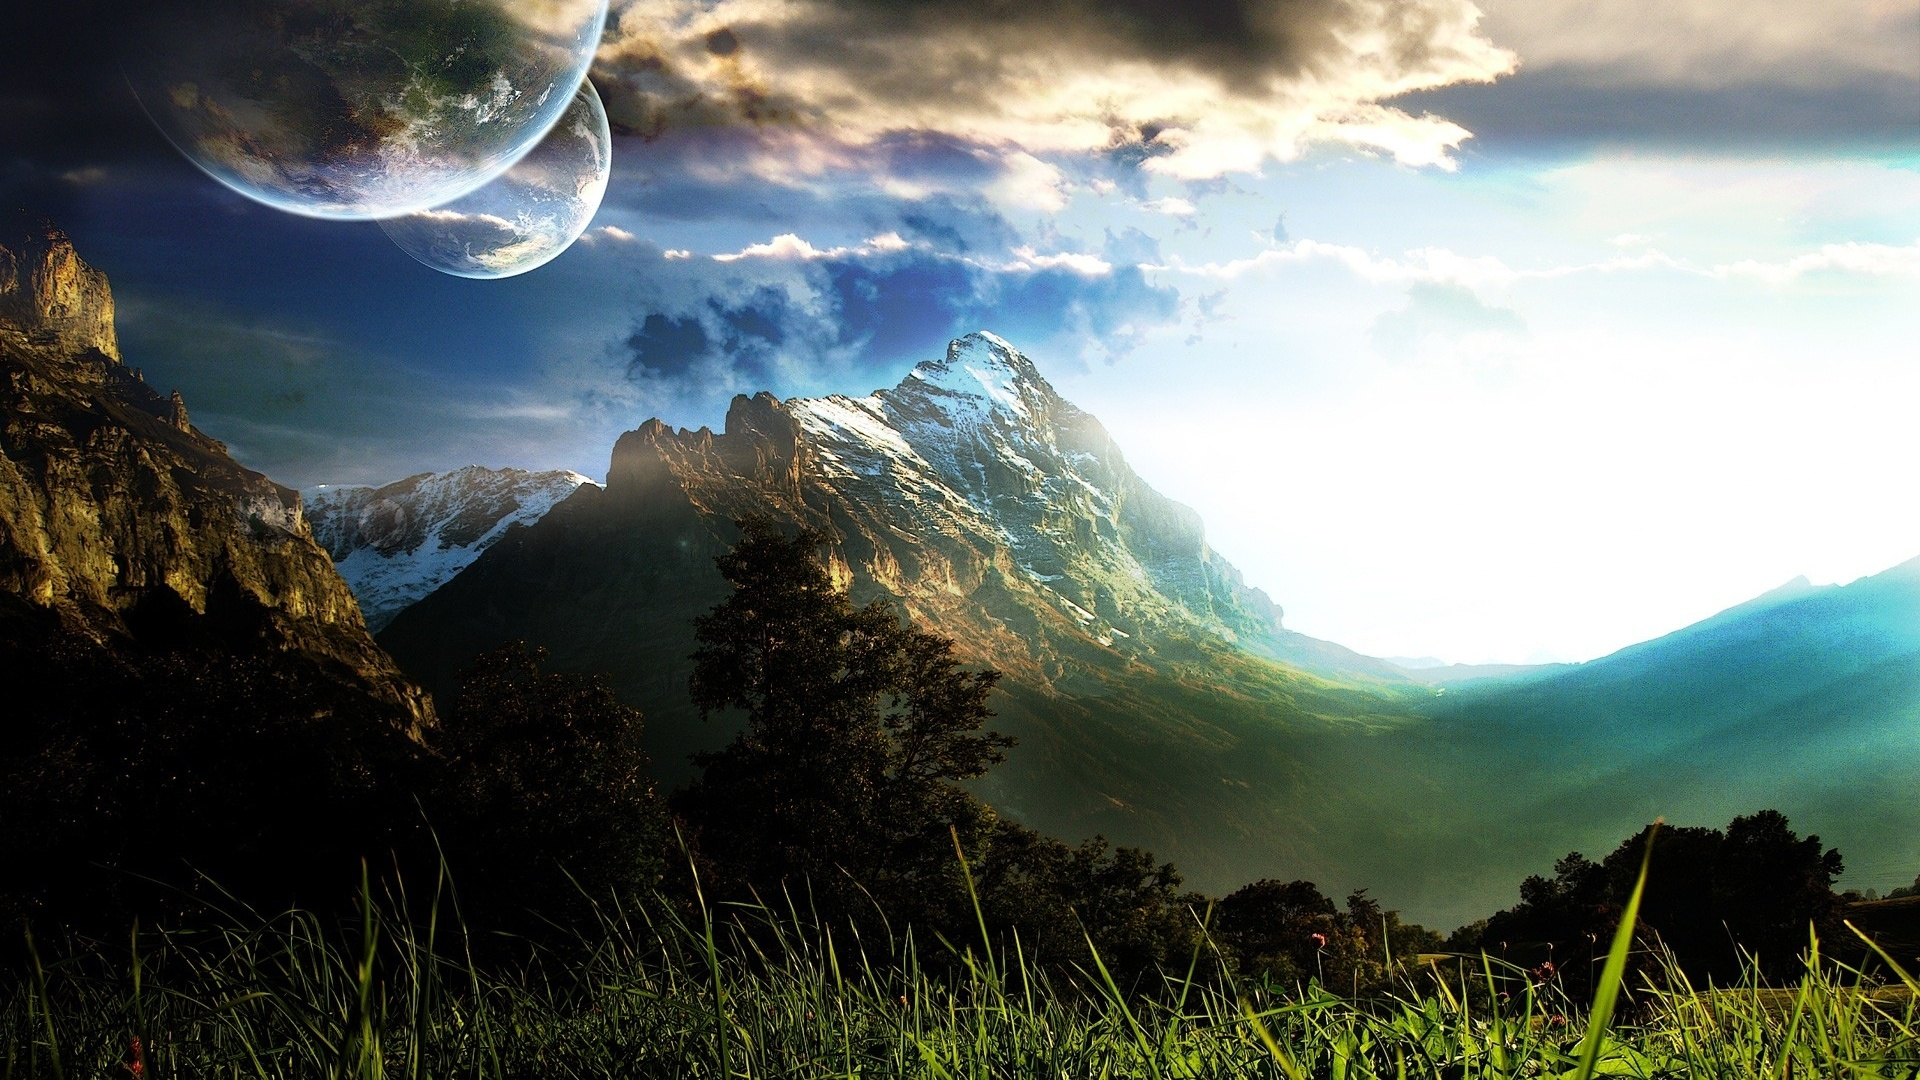 Collection of Amazing Desktop Backgrounds Hd on HDWallpapers